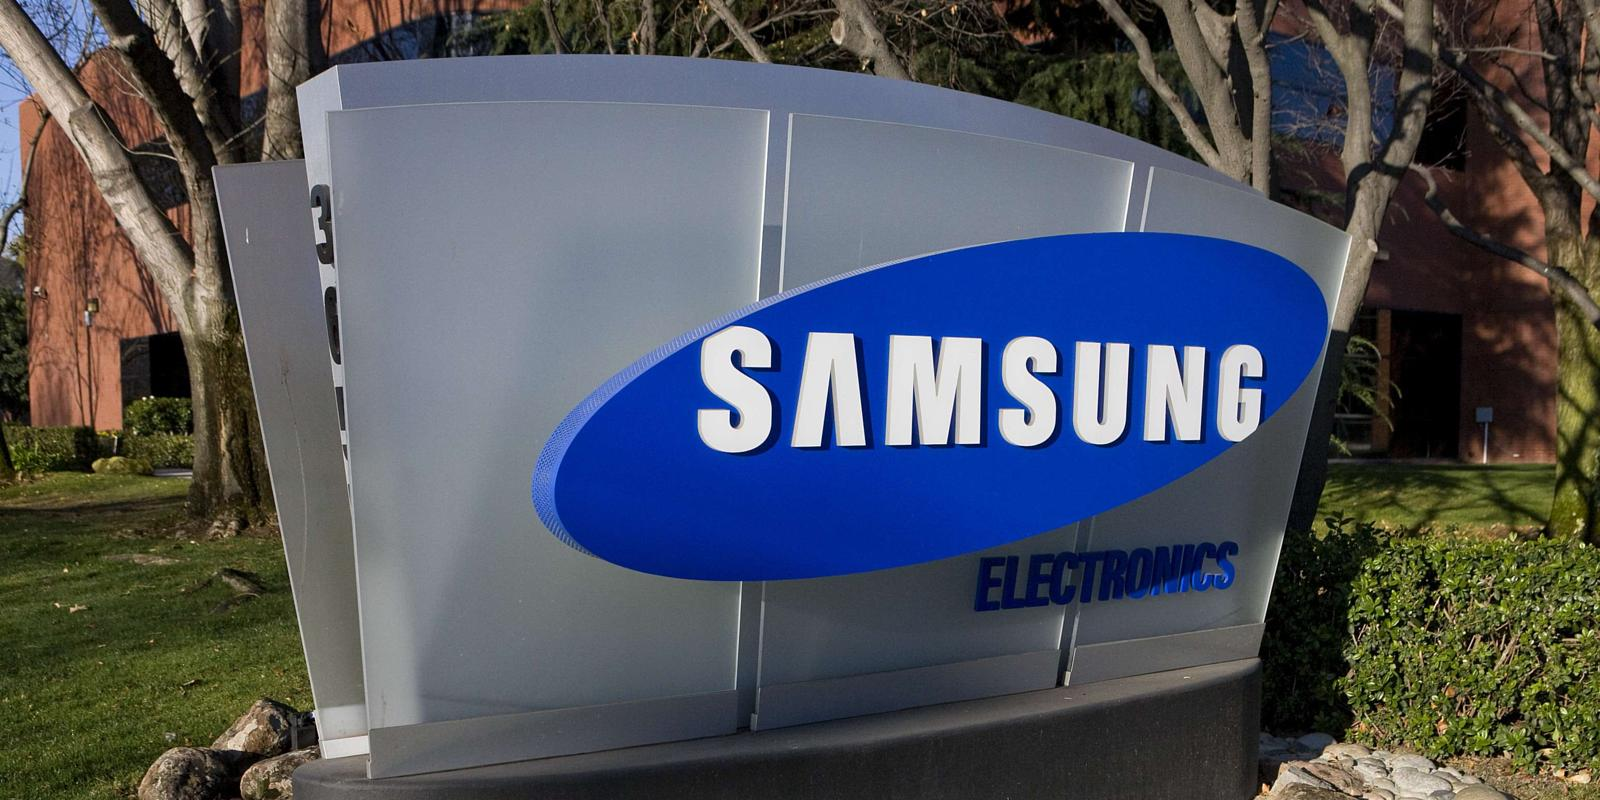 Solde Smartphone Samsung Samsung Retained The Top Spot For Most Phones Sold During